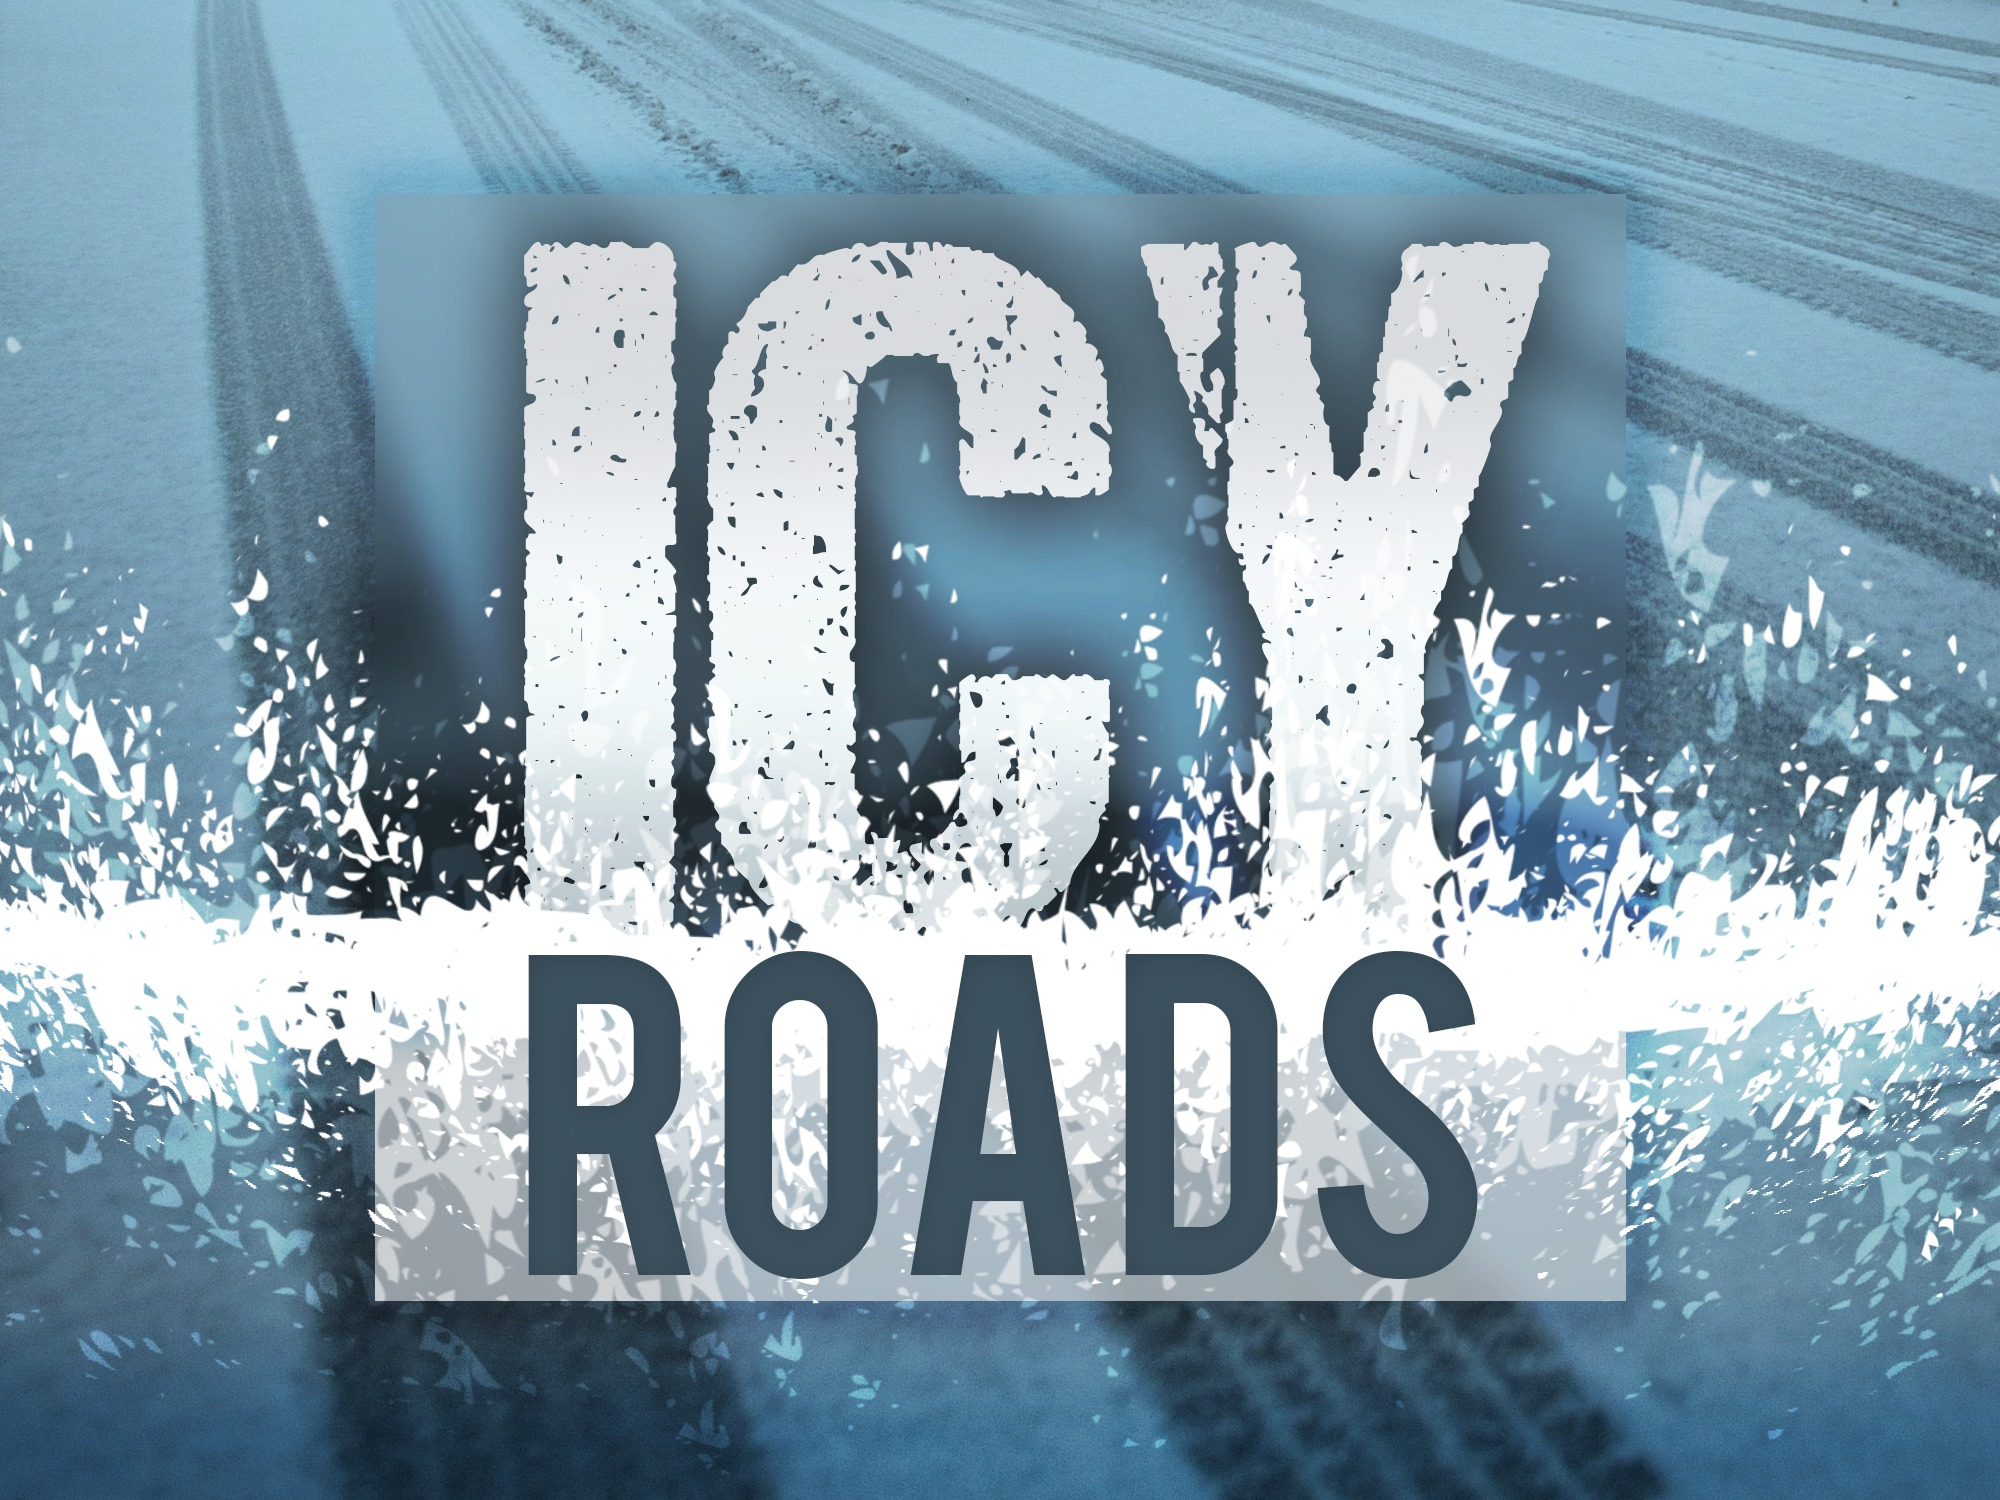 icy-roads-graphic-1482005660